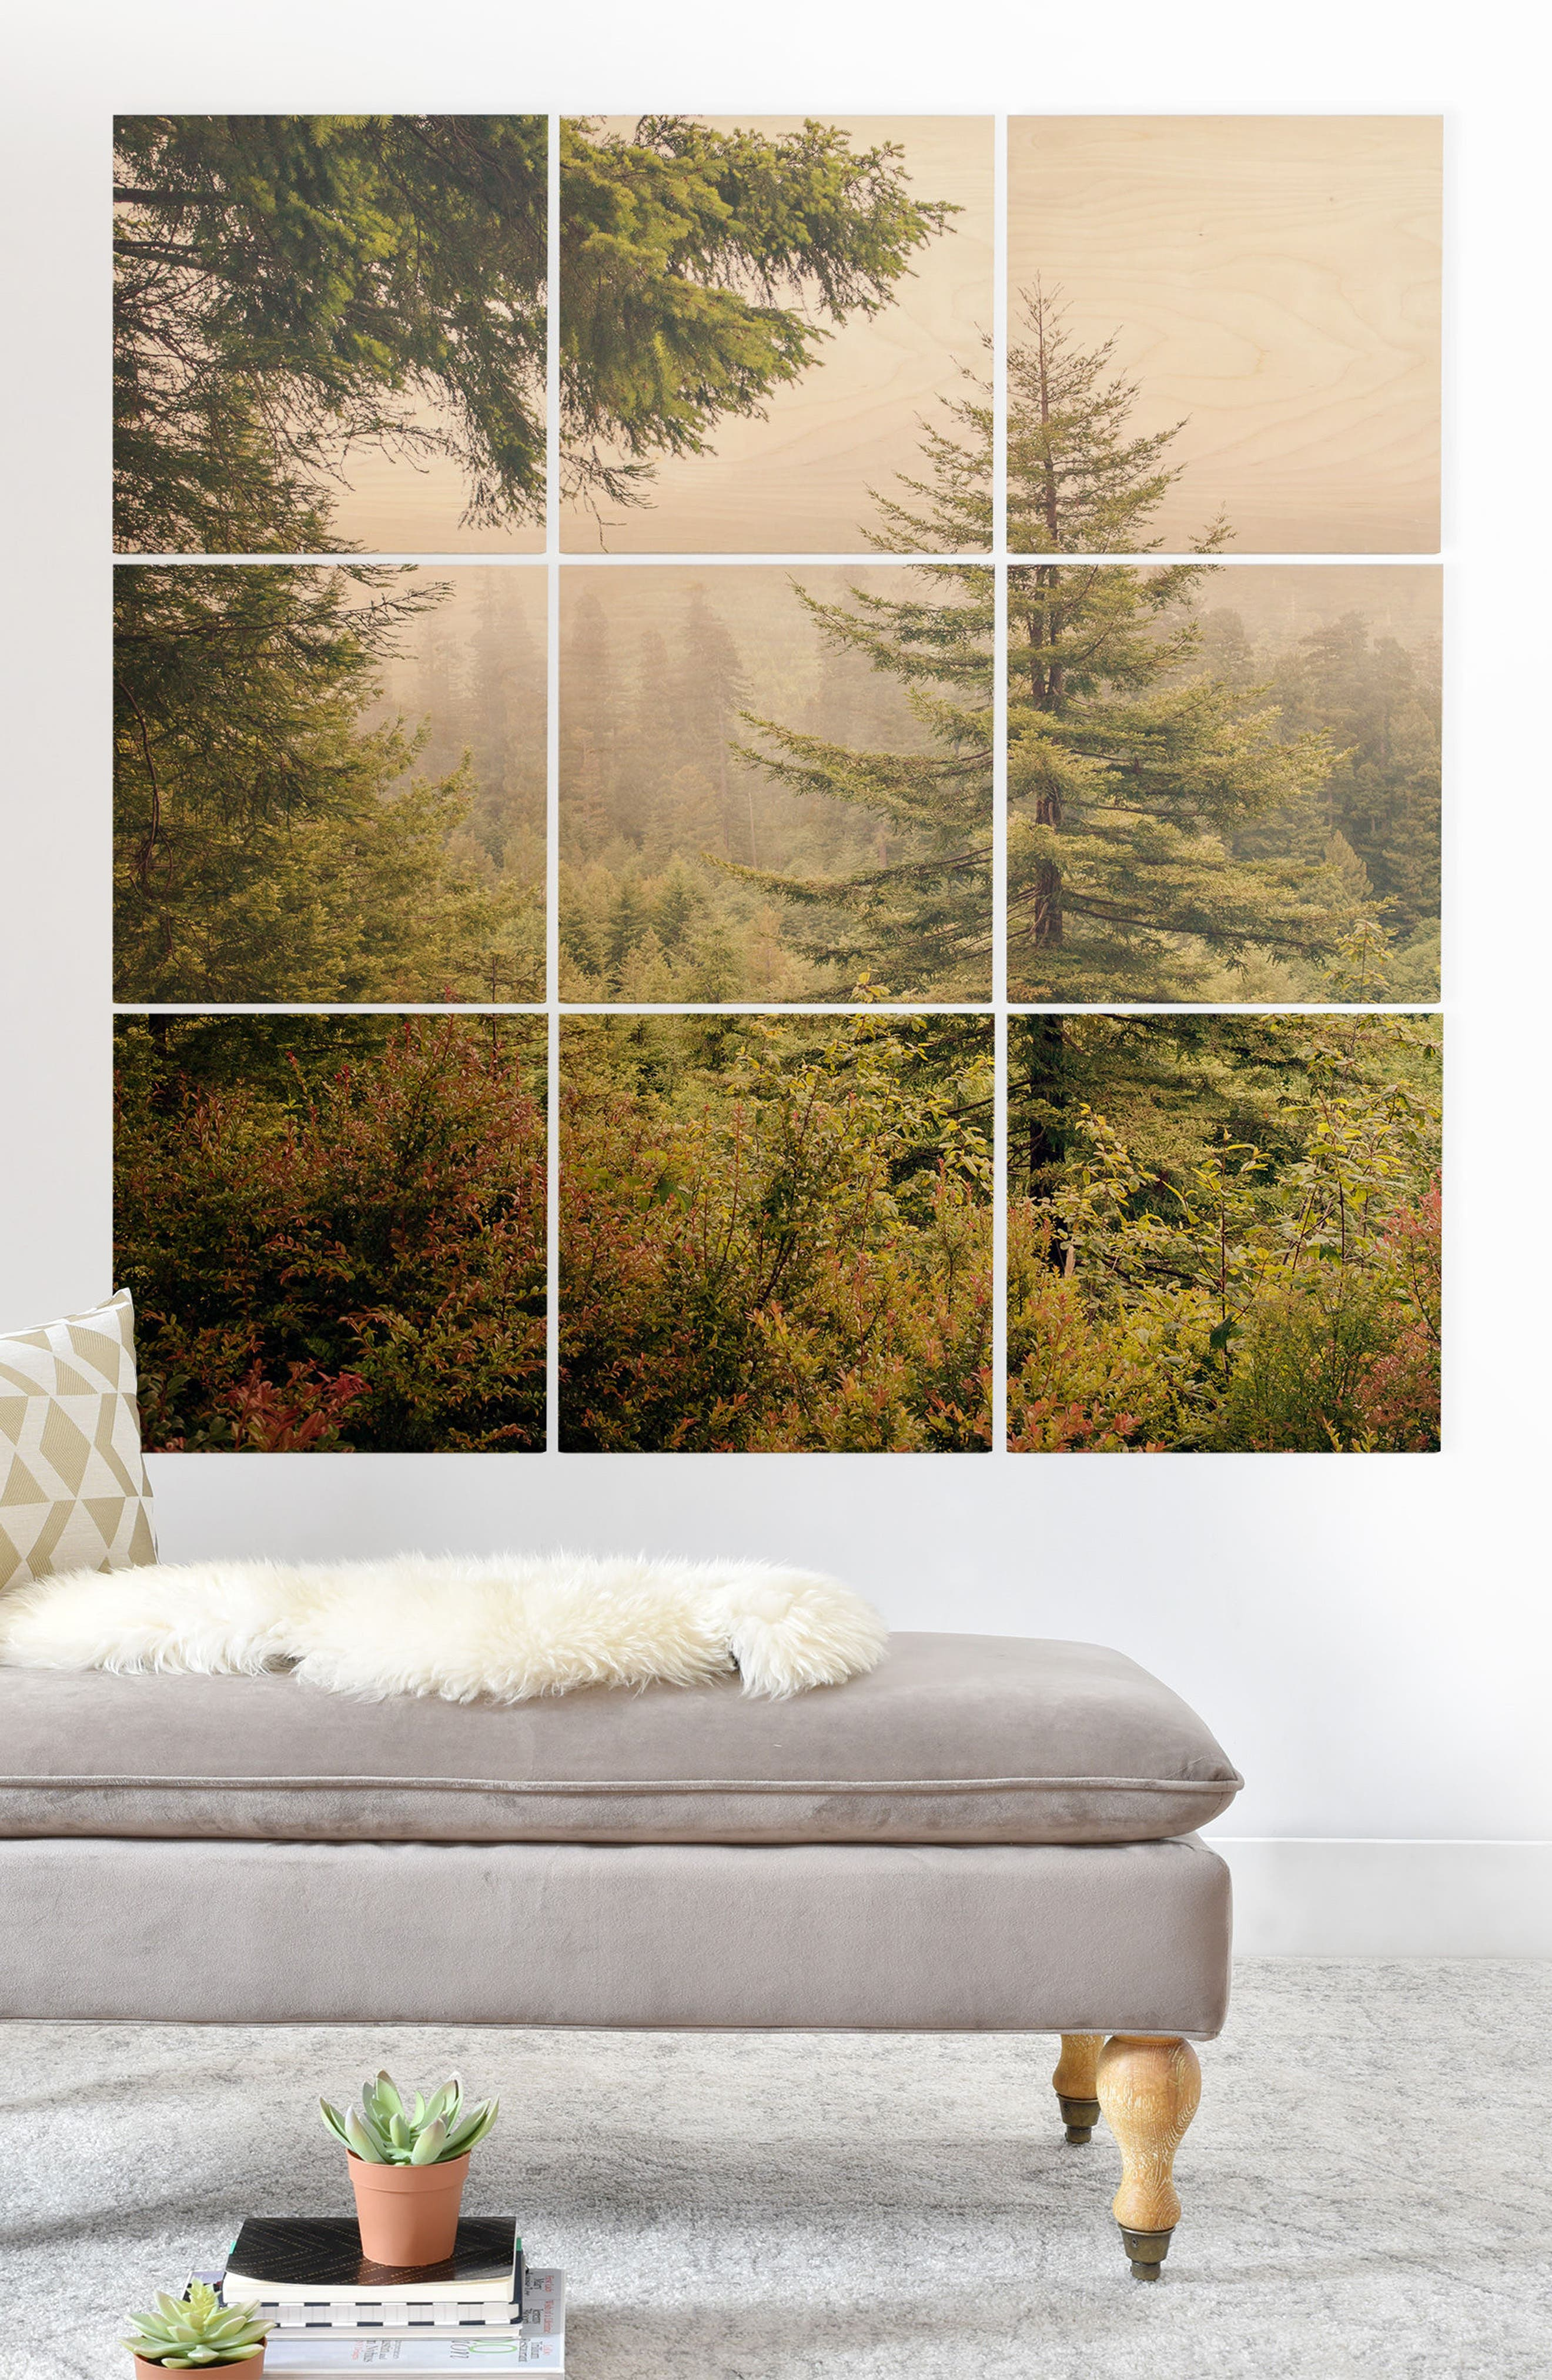 Into the Mist 9-Piece Wood Wall Mural,                             Alternate thumbnail 2, color,                             300